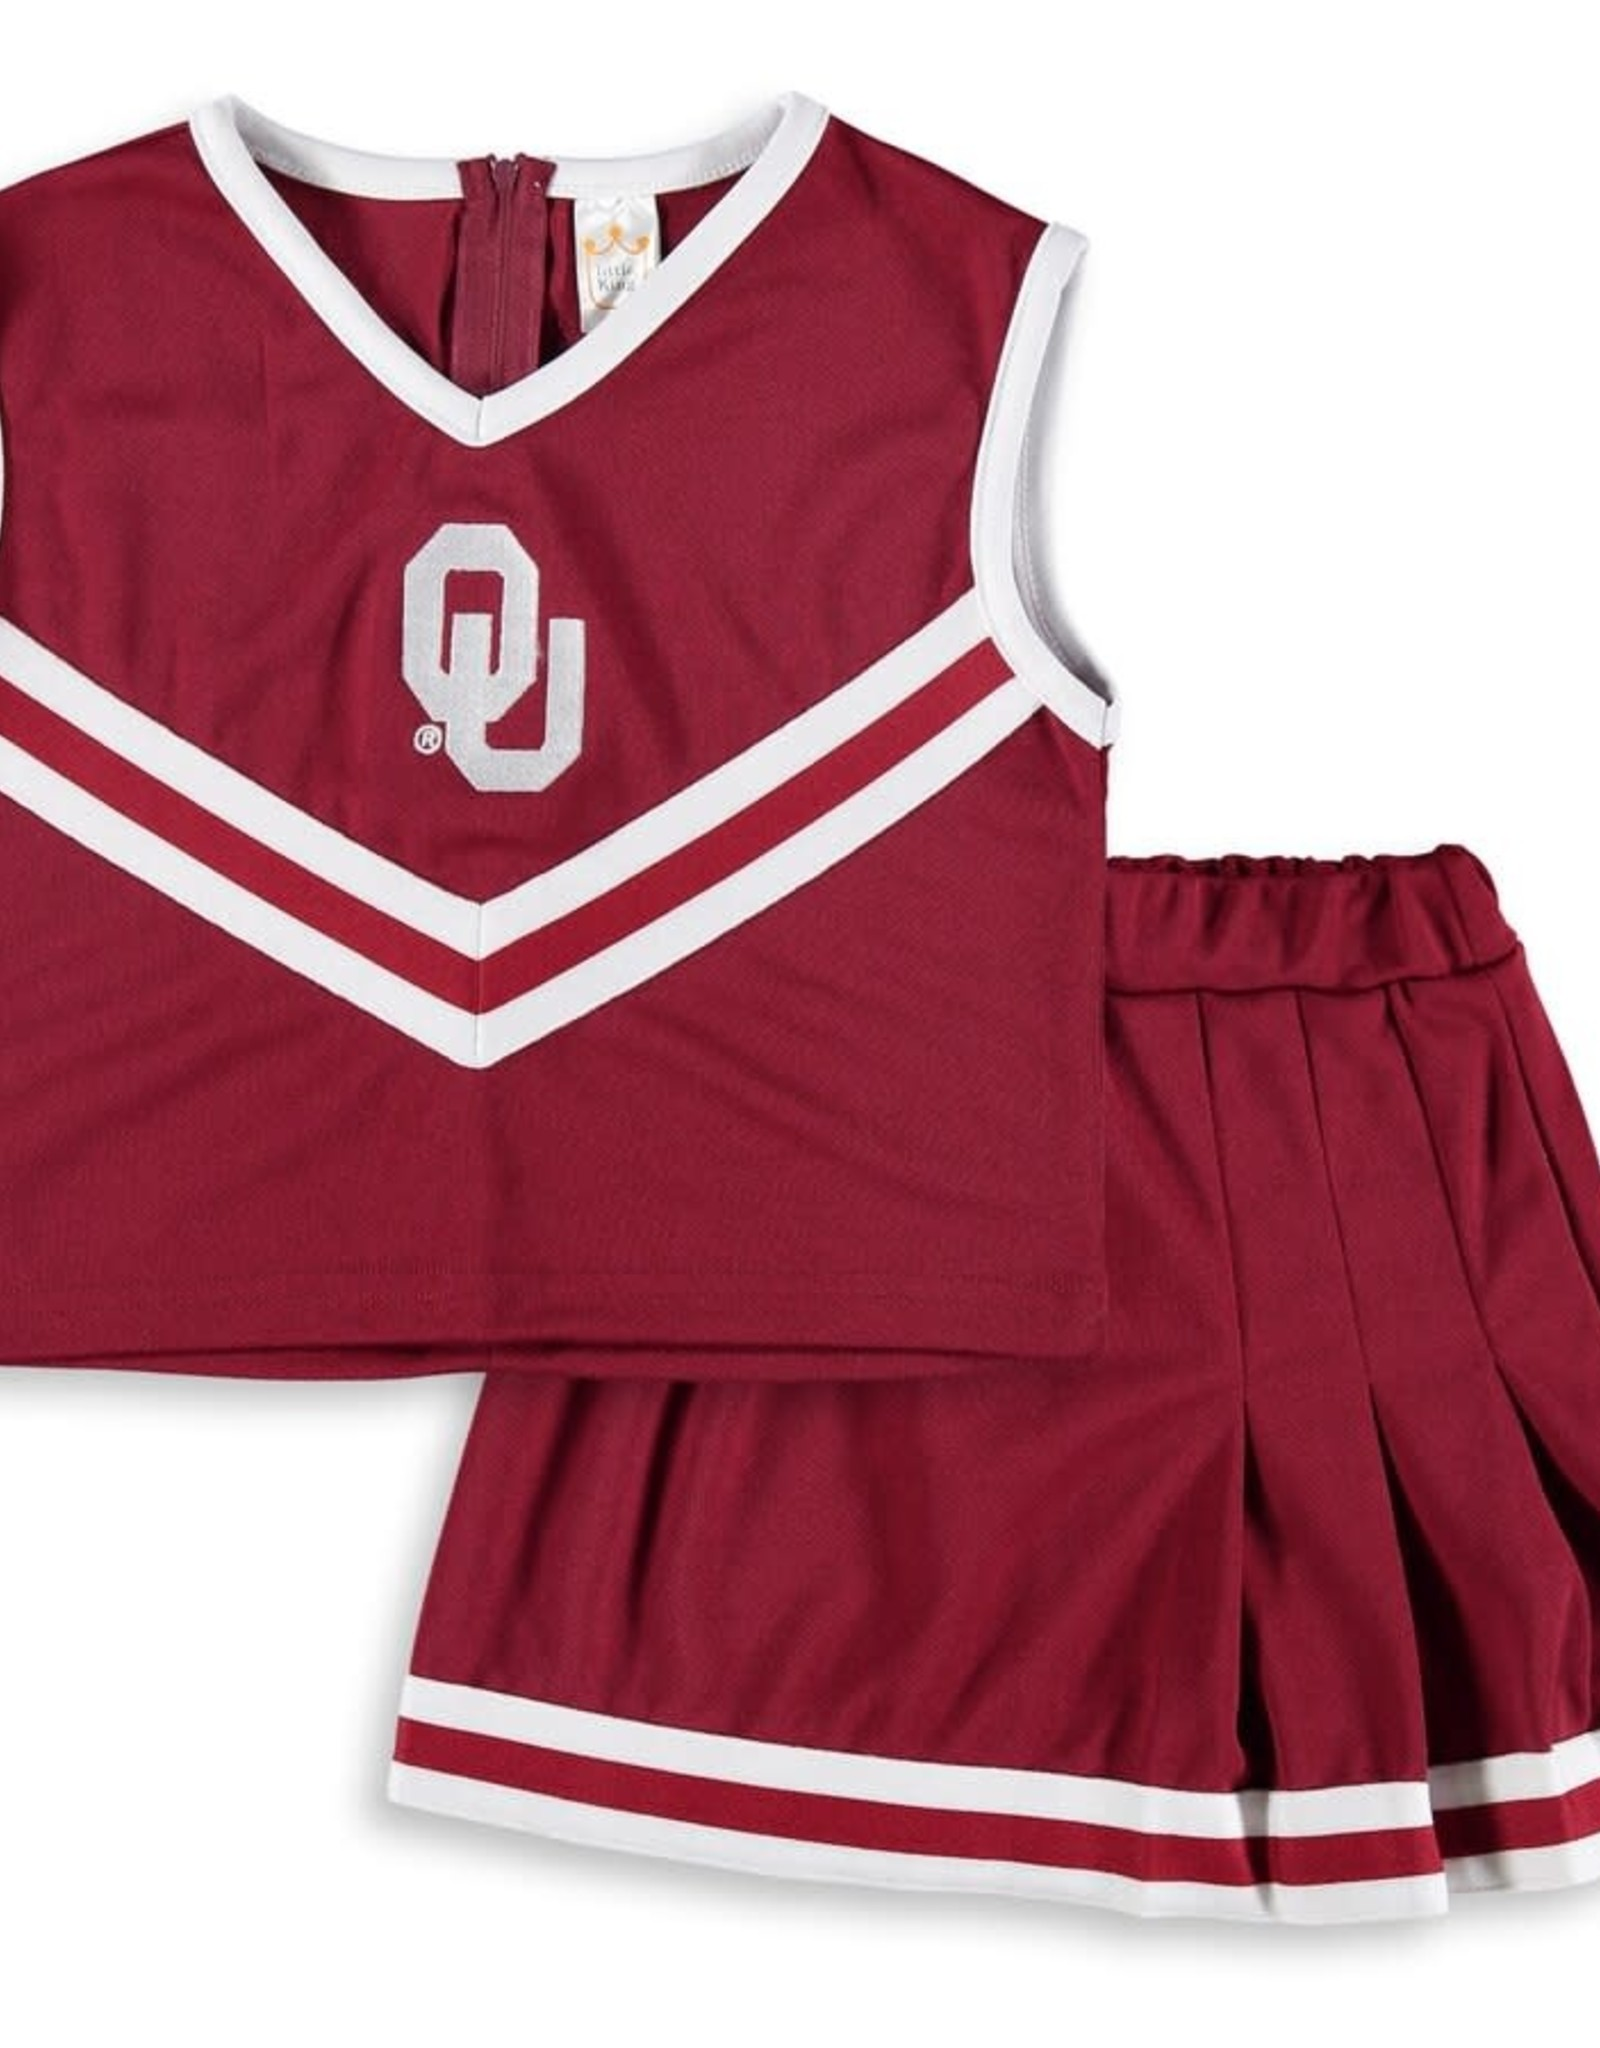 Creative Knitwear Creative Knitwear Toddler OU Cheer Dress w/ Bloomer